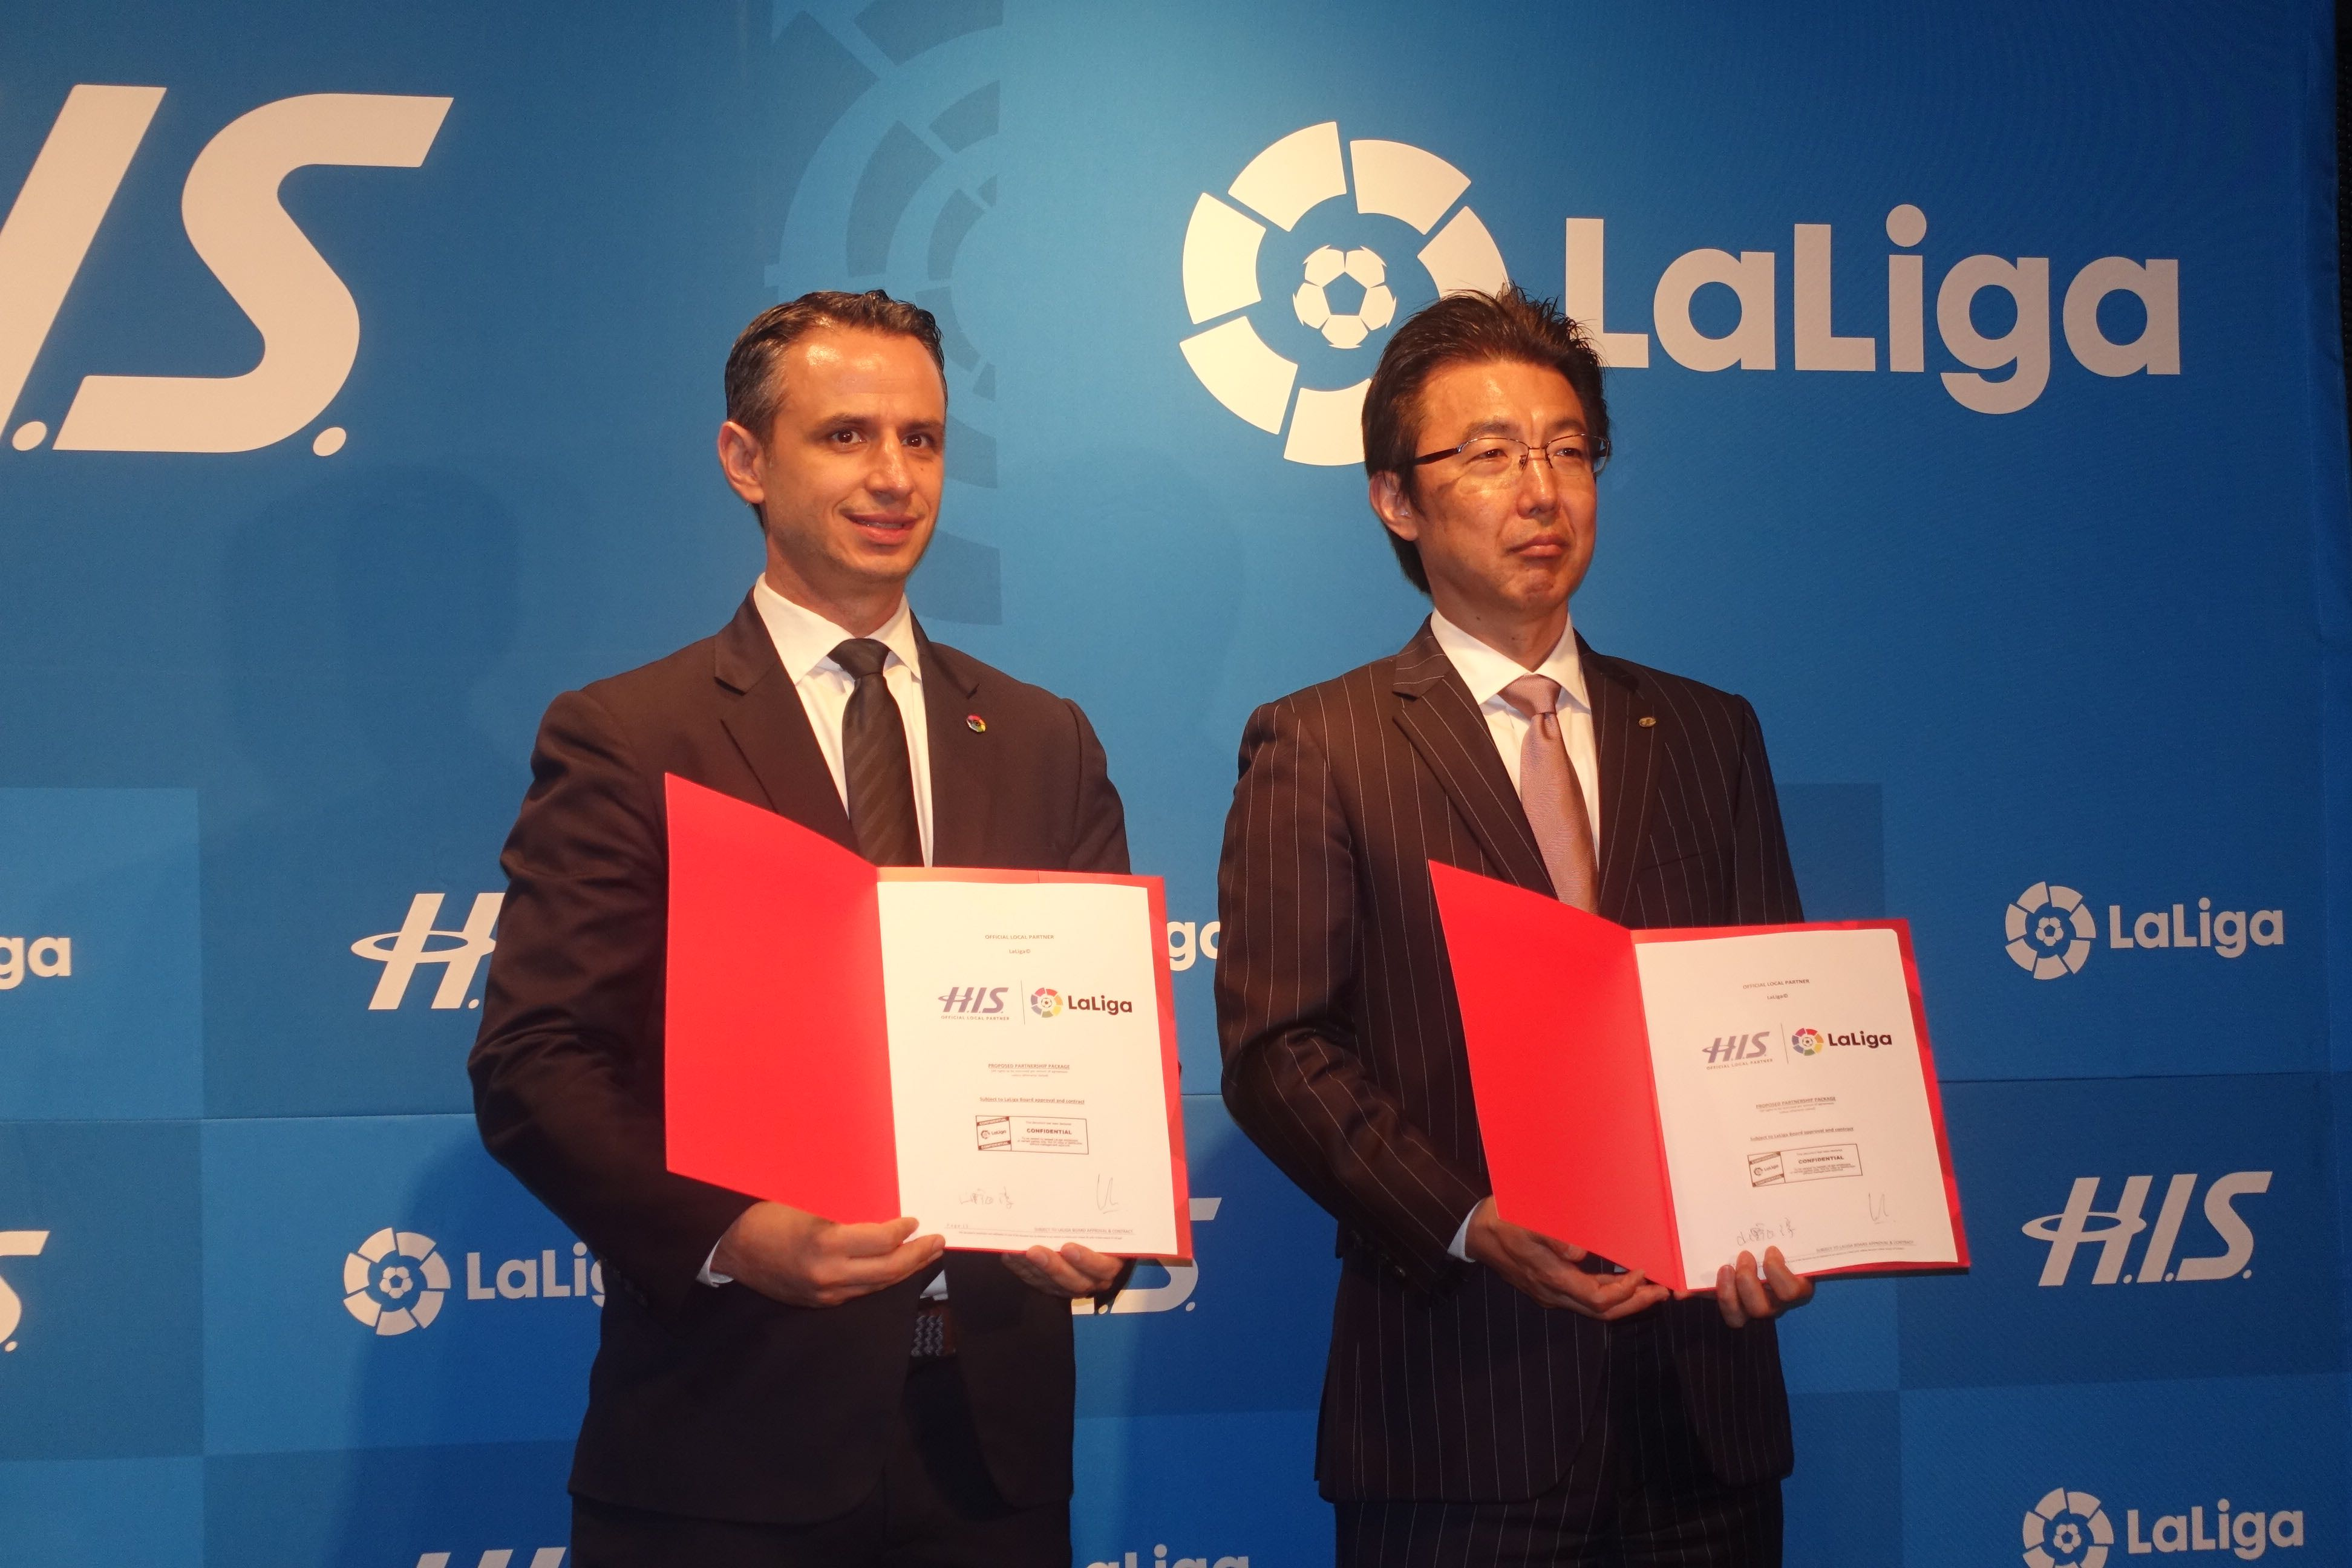 H.I.S. becomes the Japan's first official partner of Spanish professional football LaLiga, selling VIP seat package